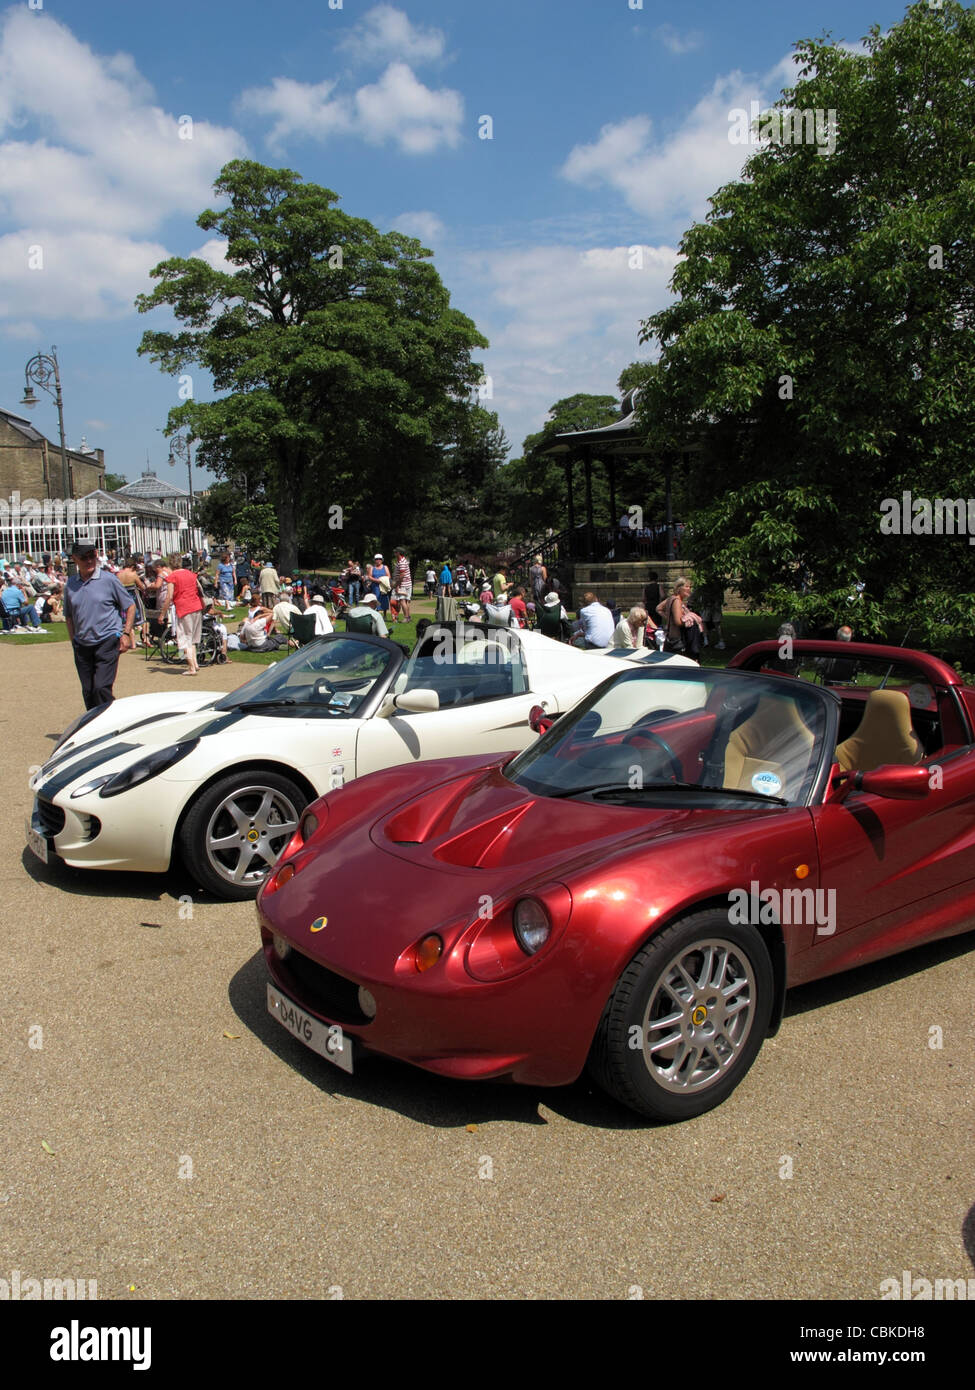 Lotus sports cars on display at a car rally in  Buxton Derbyshire East Midlands England - Stock Image